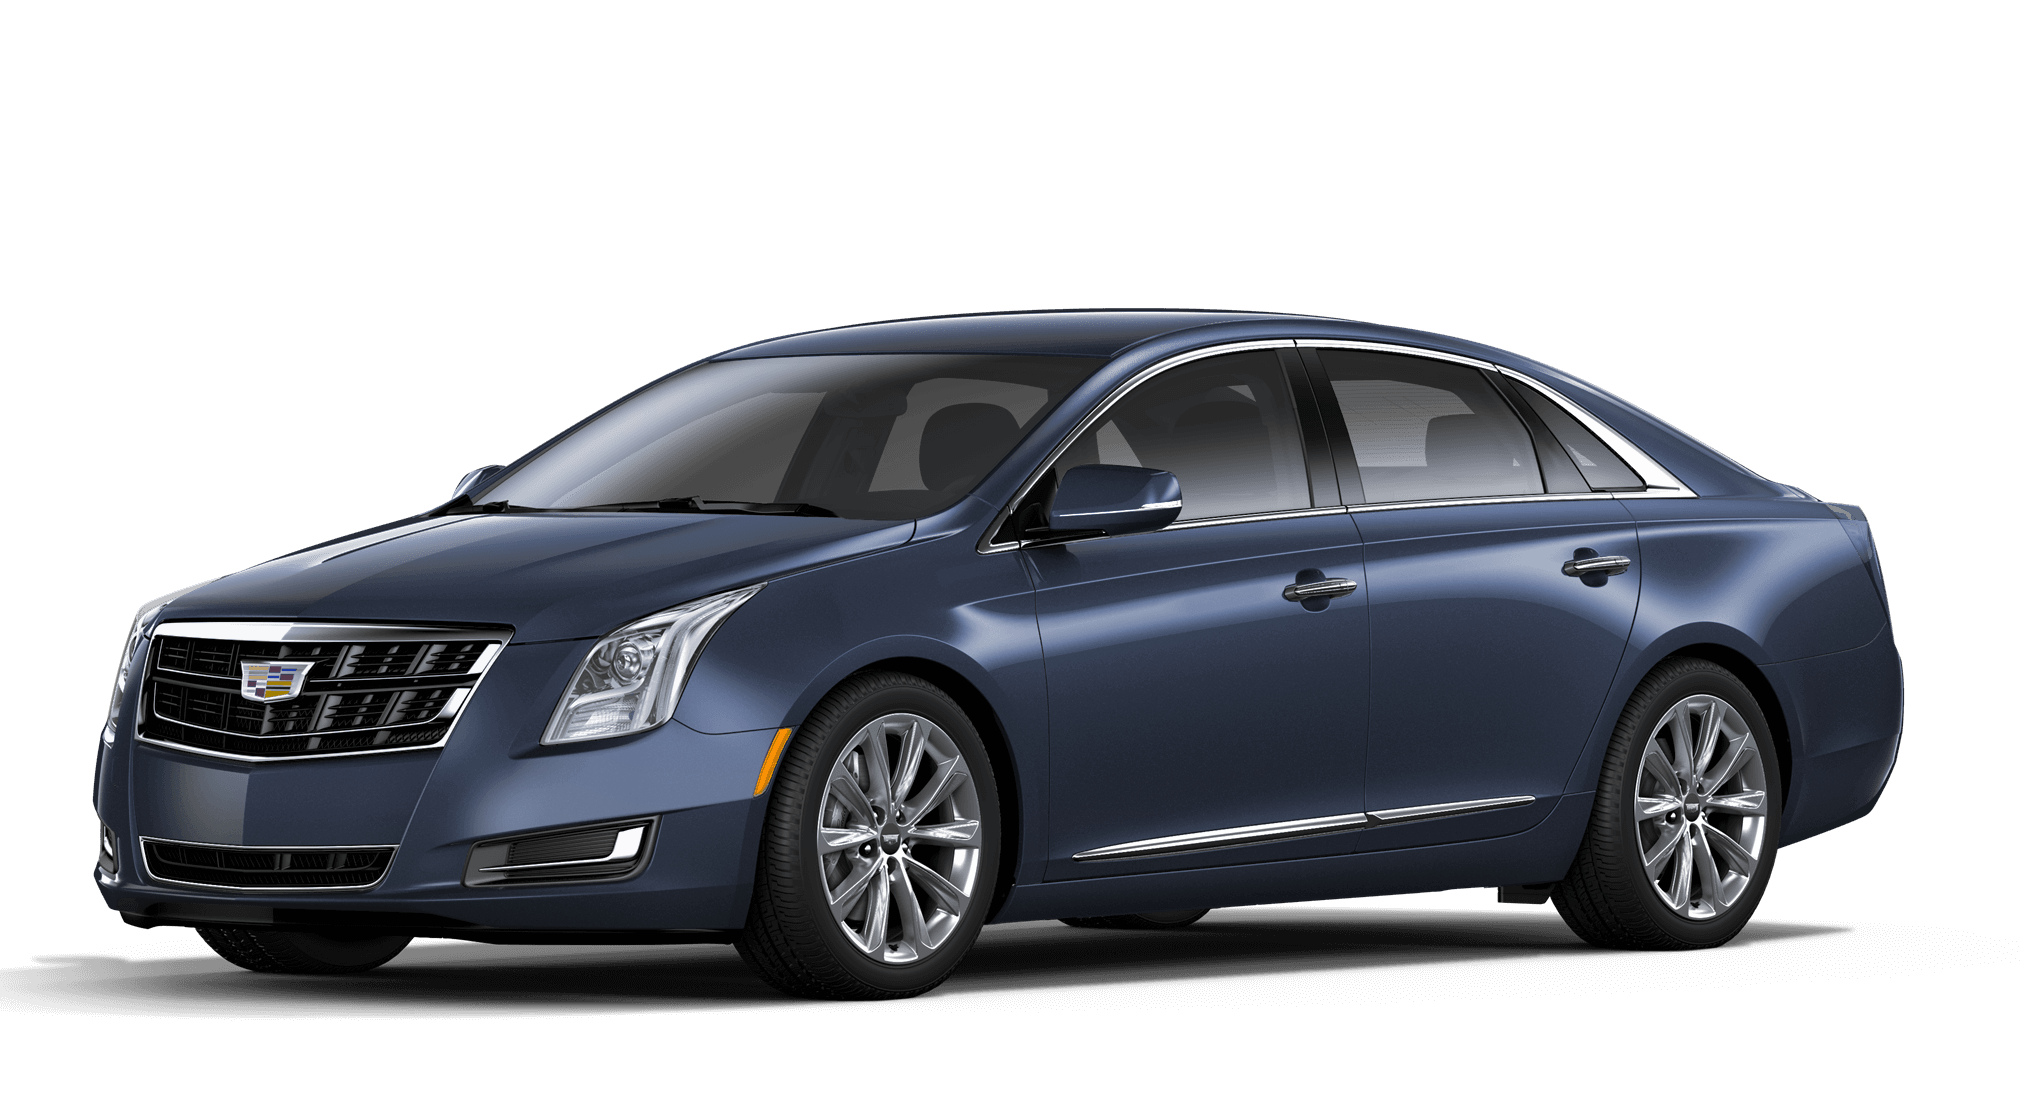 2016 Cadillac XTS Dark Adriatic Blue